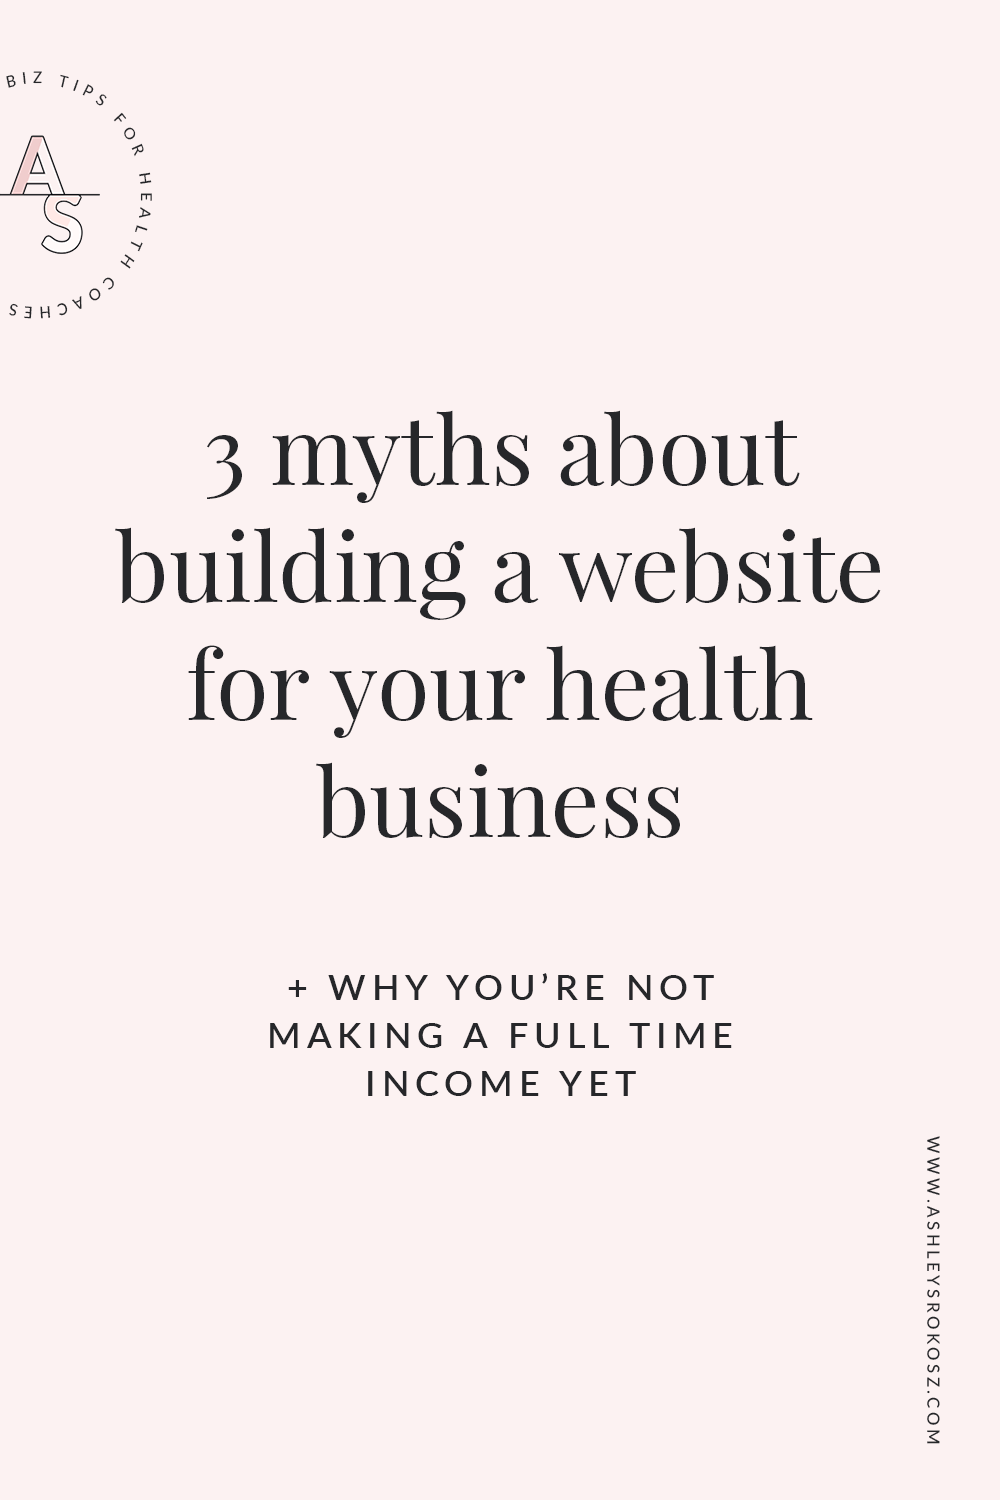 3 myths about building a website for health business | Ashley Srokosz | Nutrition business